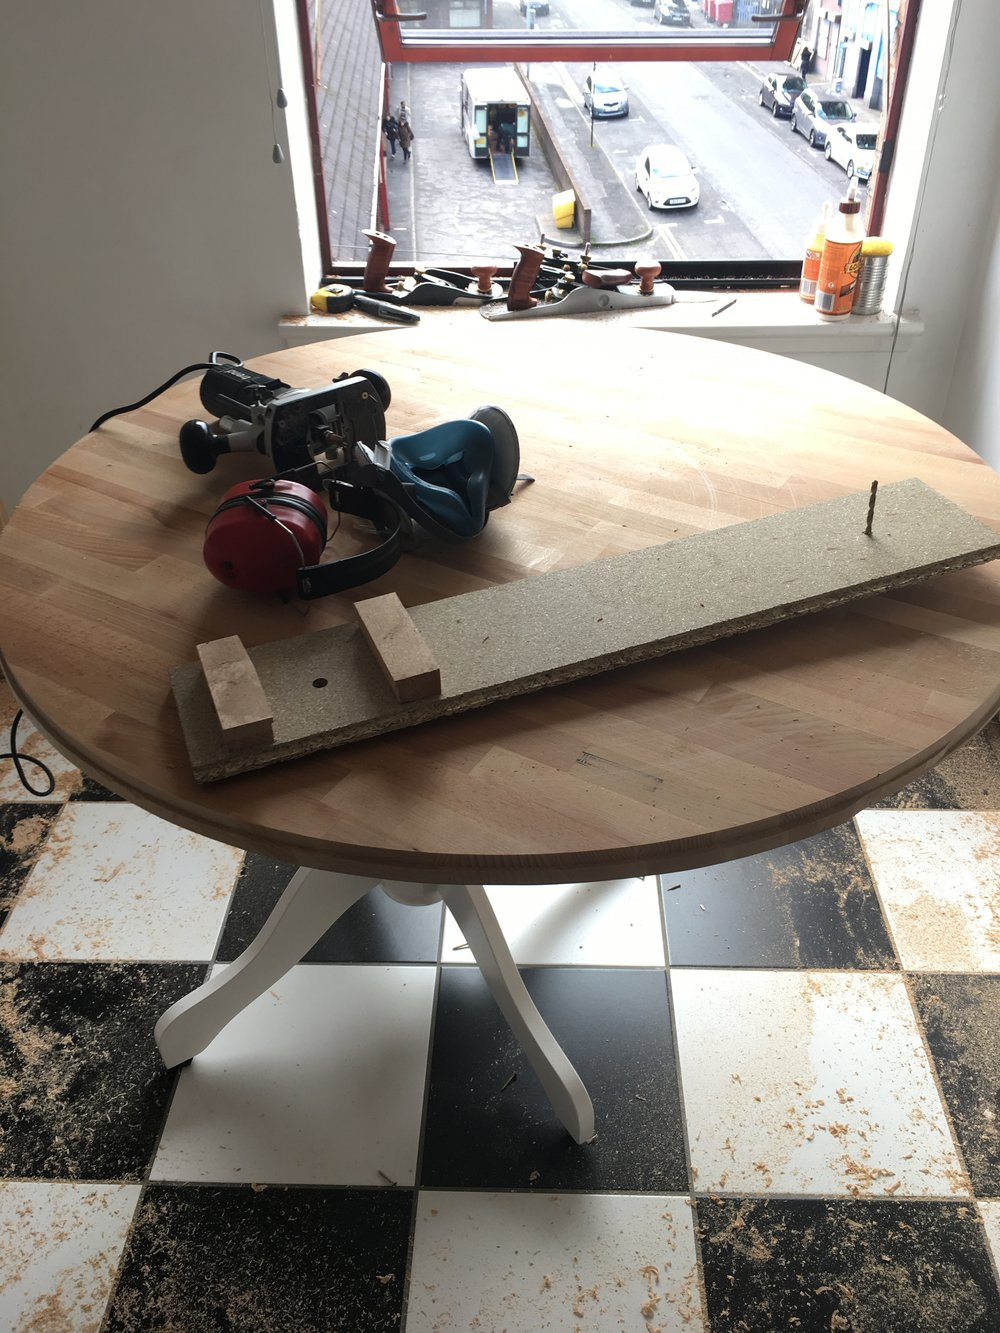 Router trammel jig and the mess I made.